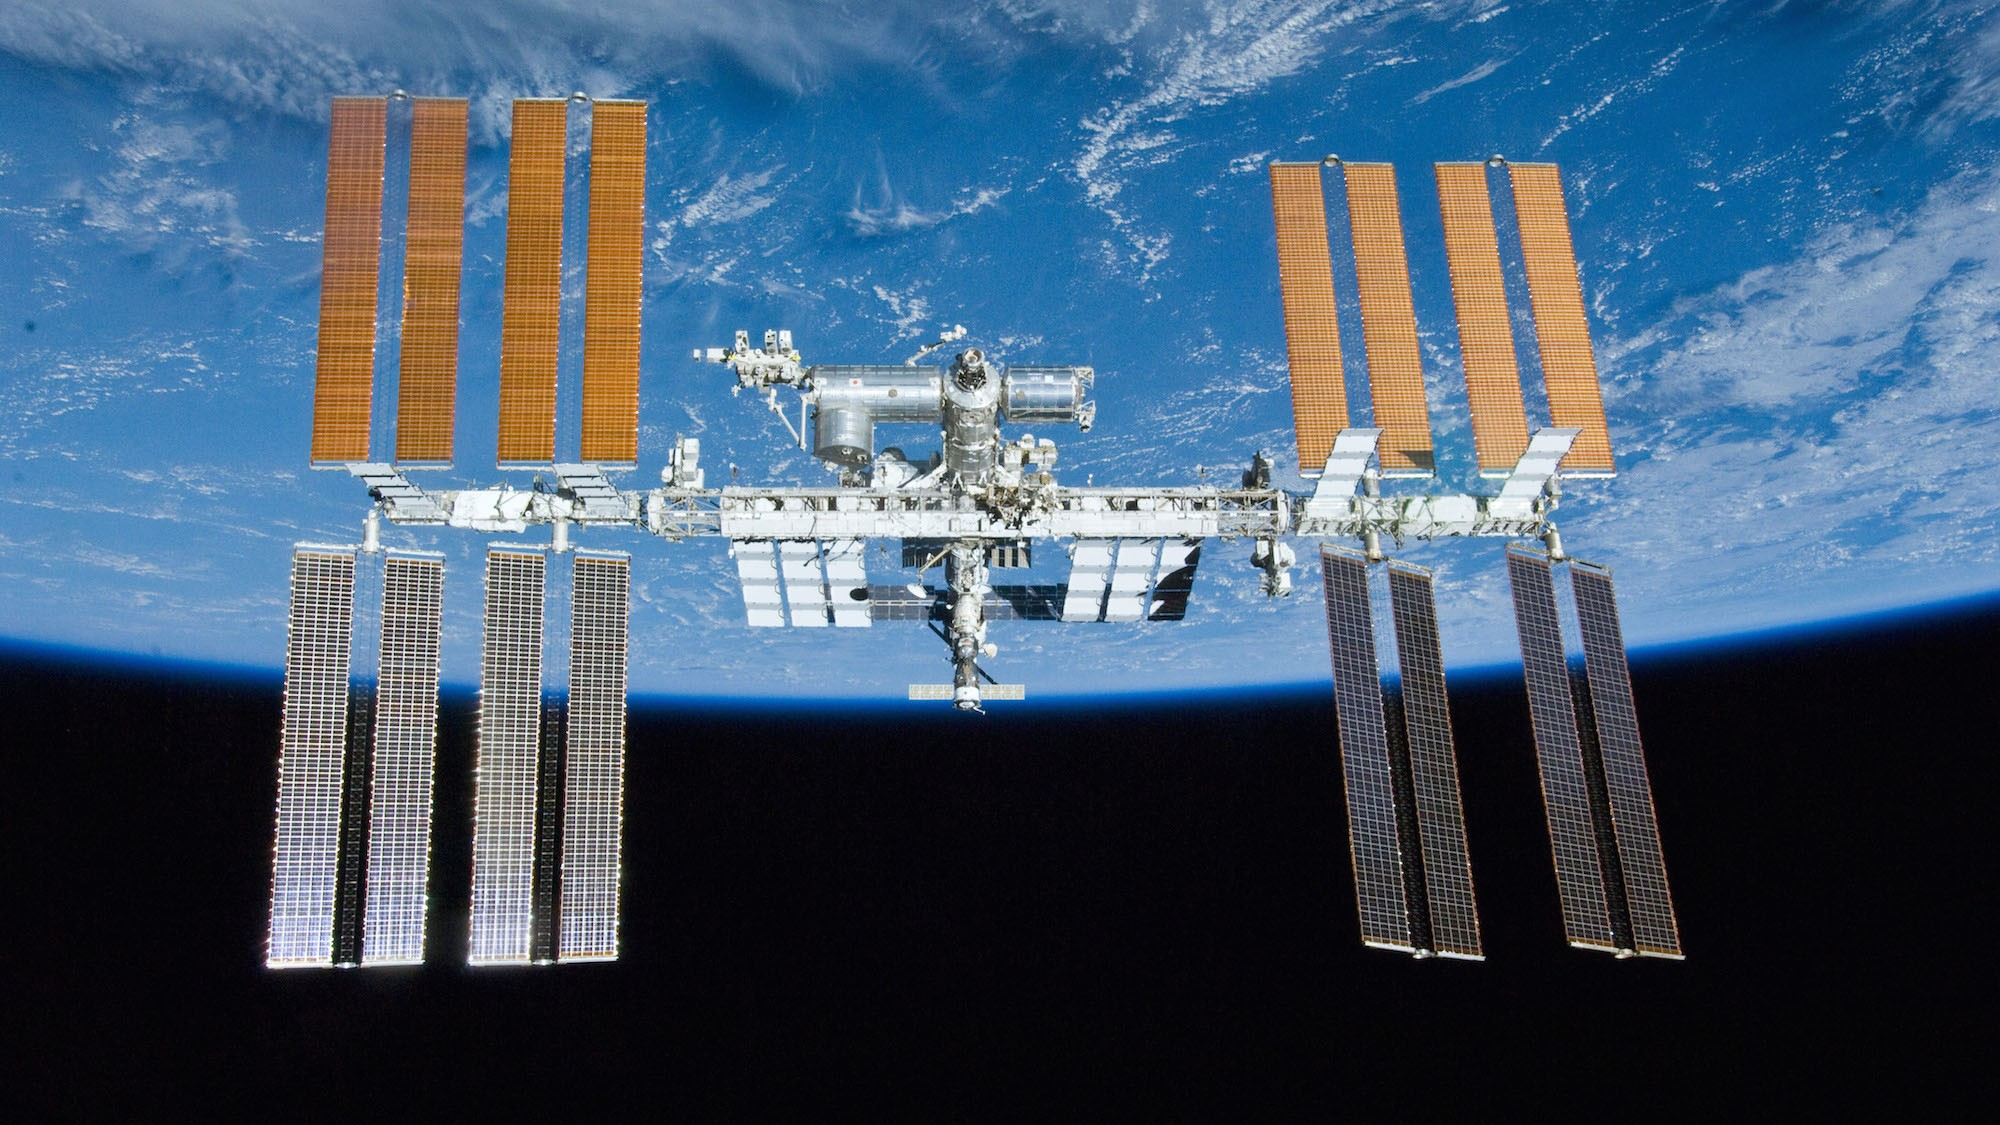 Chinese Research Will Fly on the International Space Station for the First Time